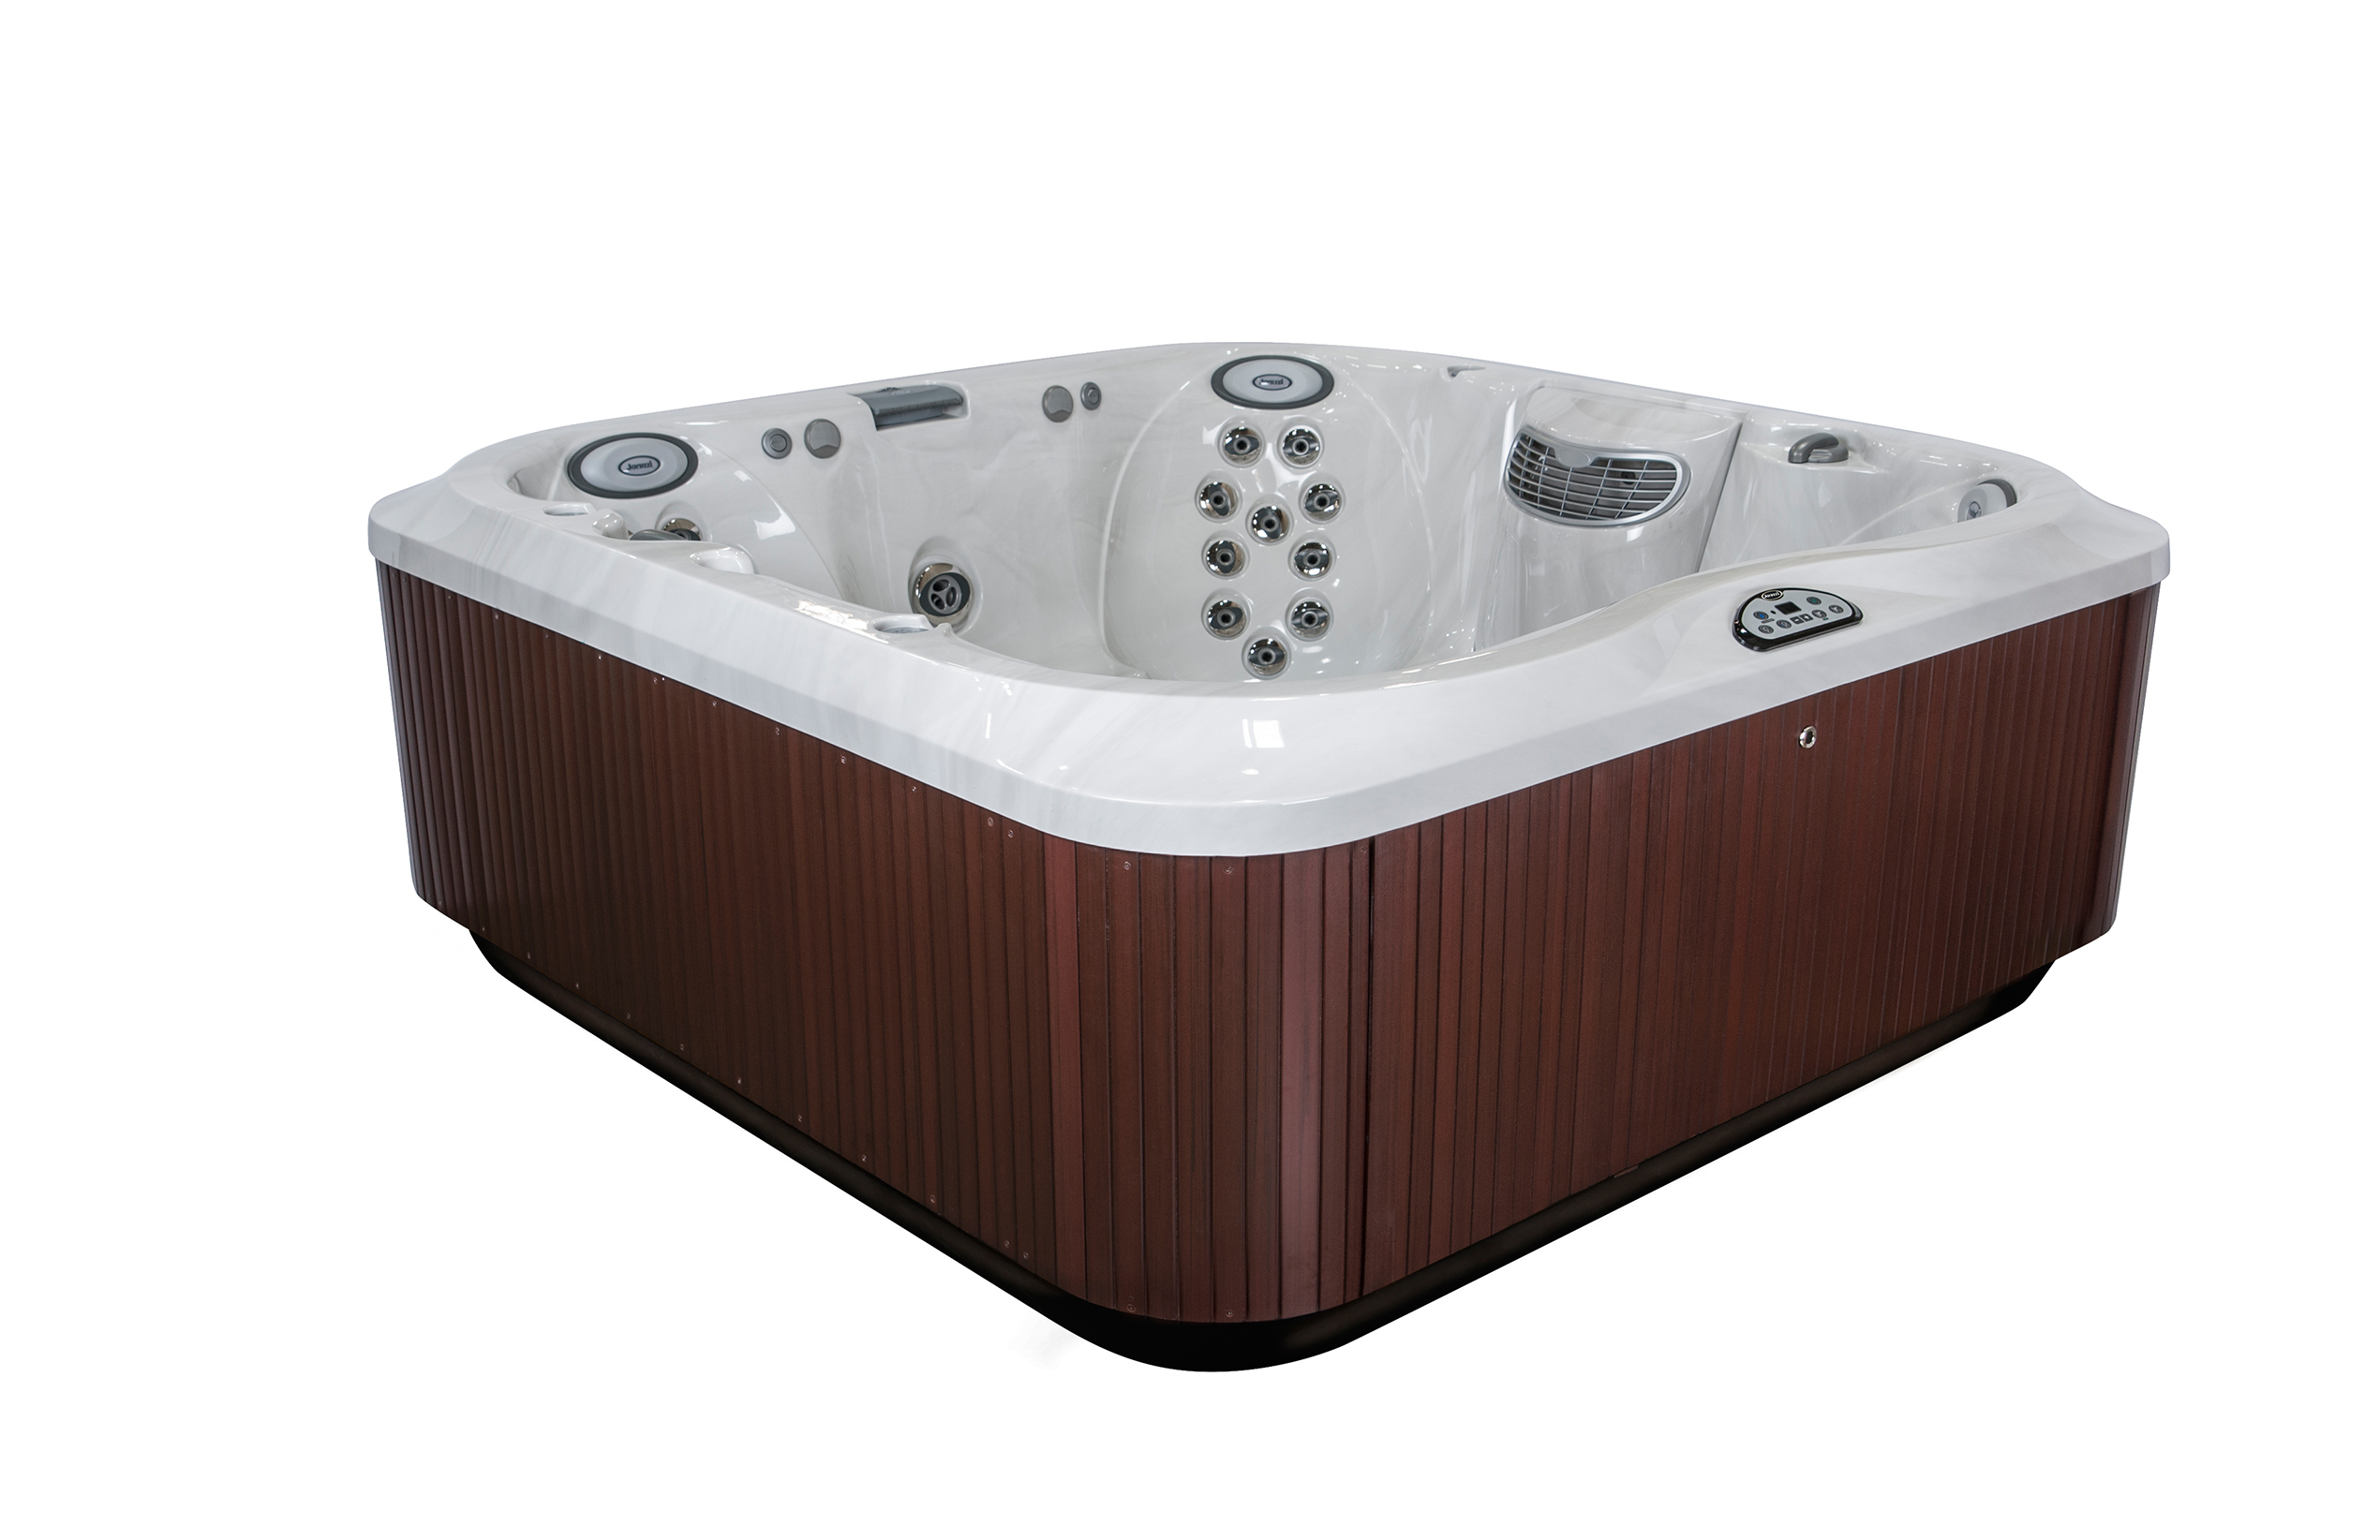 Jacuzzi Brand Pool Pump Jacuzzi J 375 6 Person Hot Tub Ultra Modern Pool And Patio